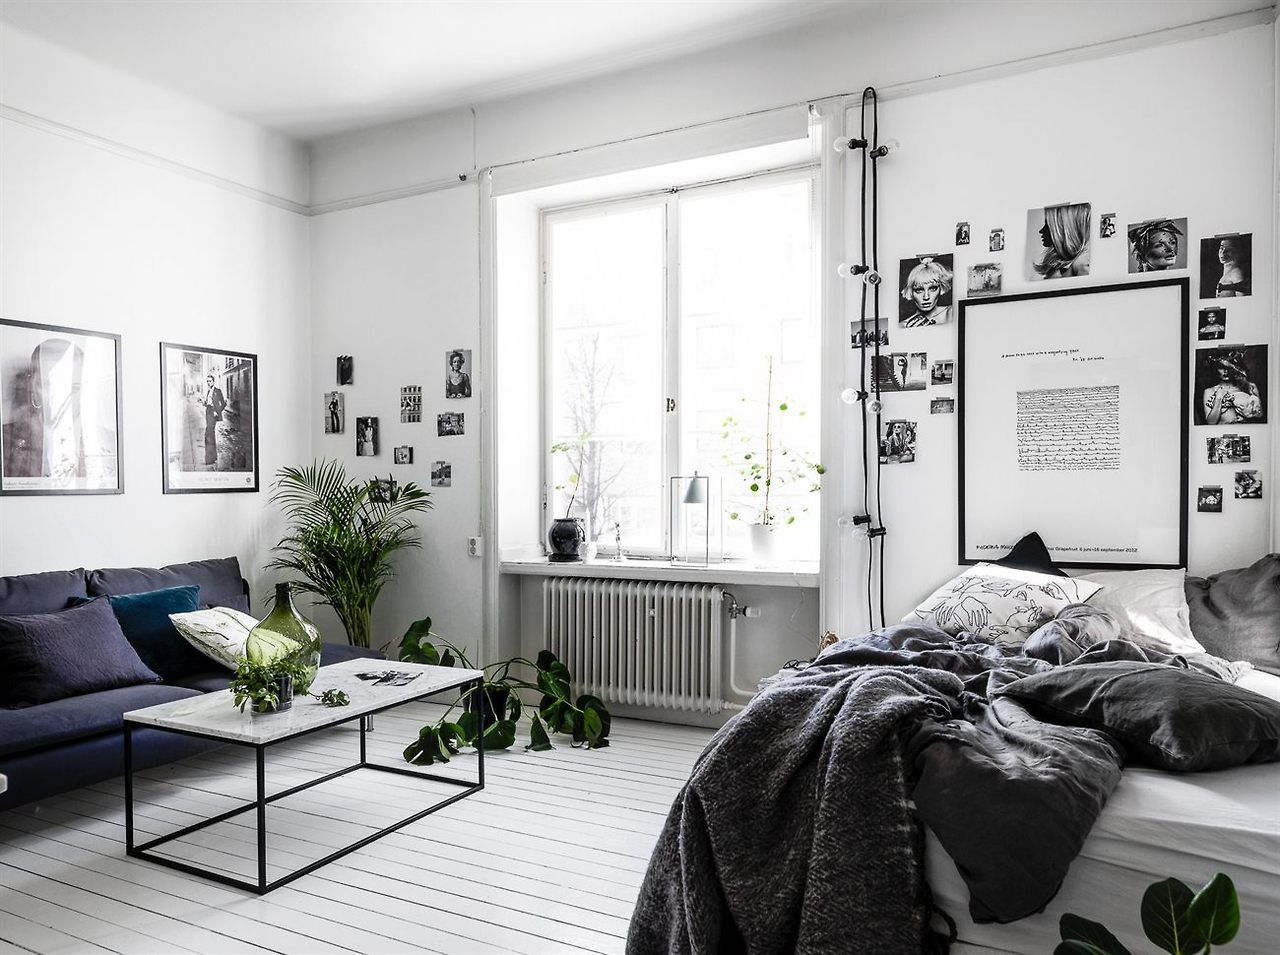 Monochrome Studio Apartment Are You Looking For Unique And Beautiful Art Photos Or Poster Prints Not The Ones Featured In This Pin To Create Your Gallery